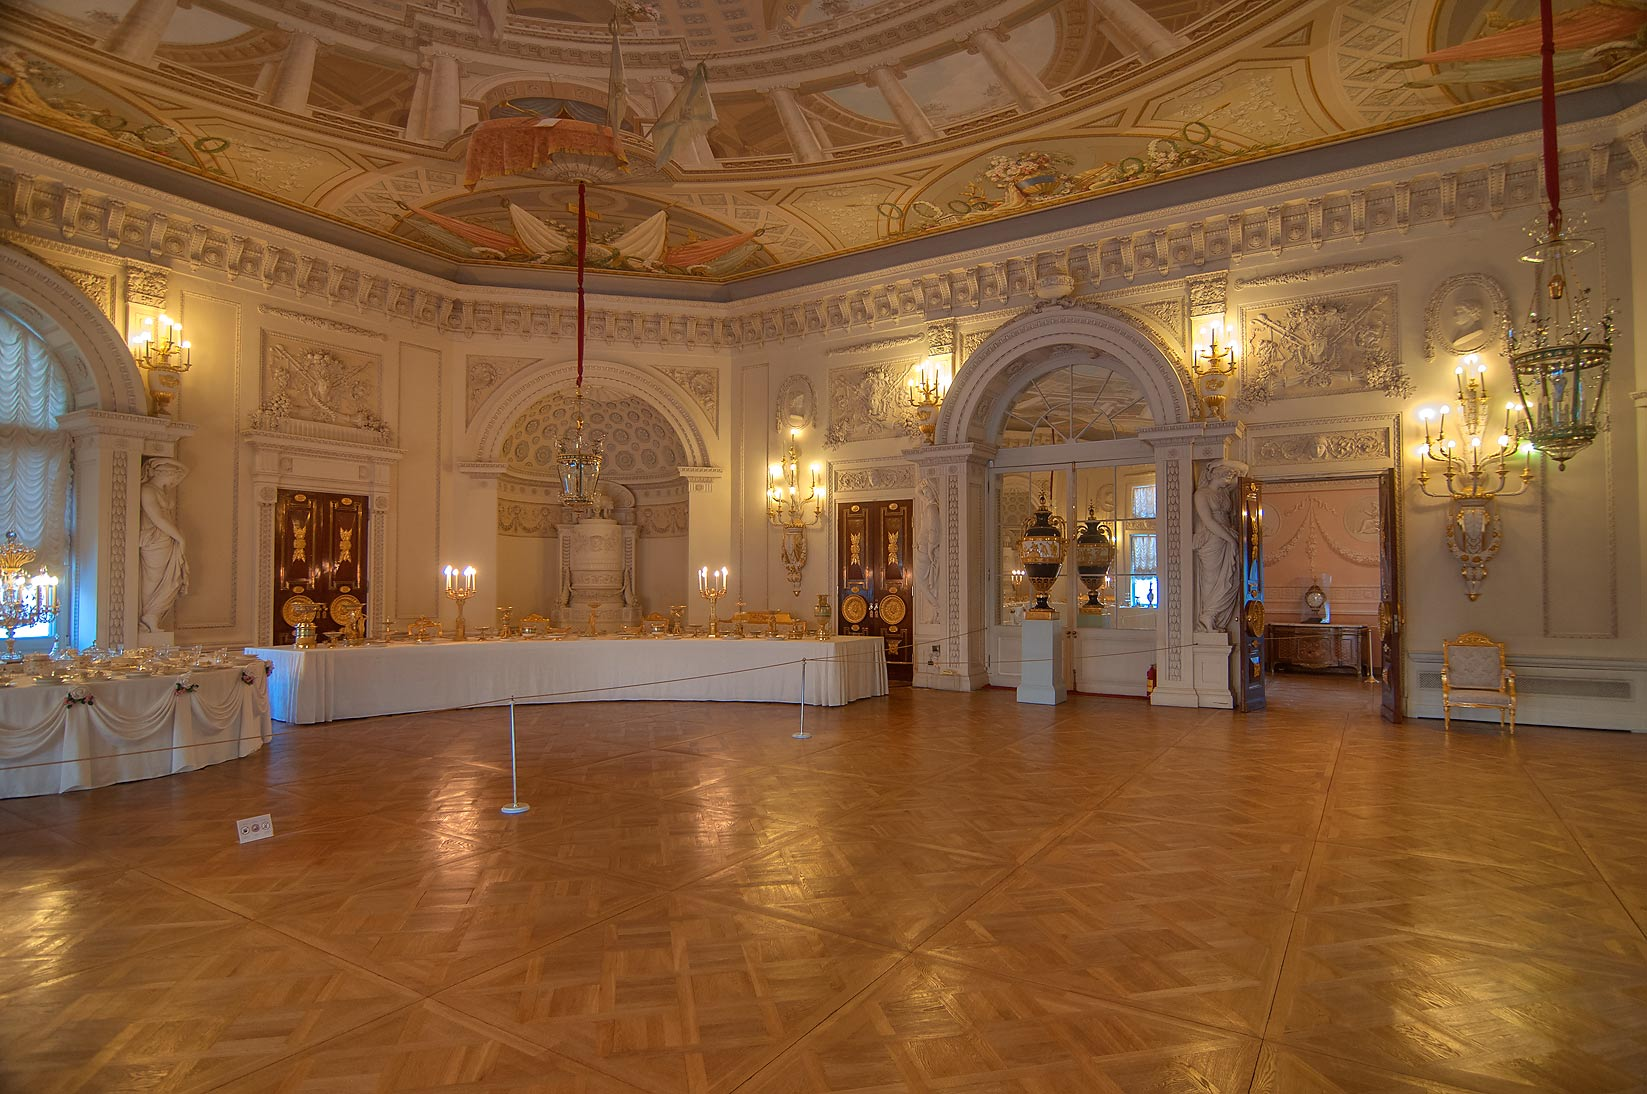 A dining hall in Pavlovsky Palace. Pavlovsk, a suburb of St.Petersburg, Russia